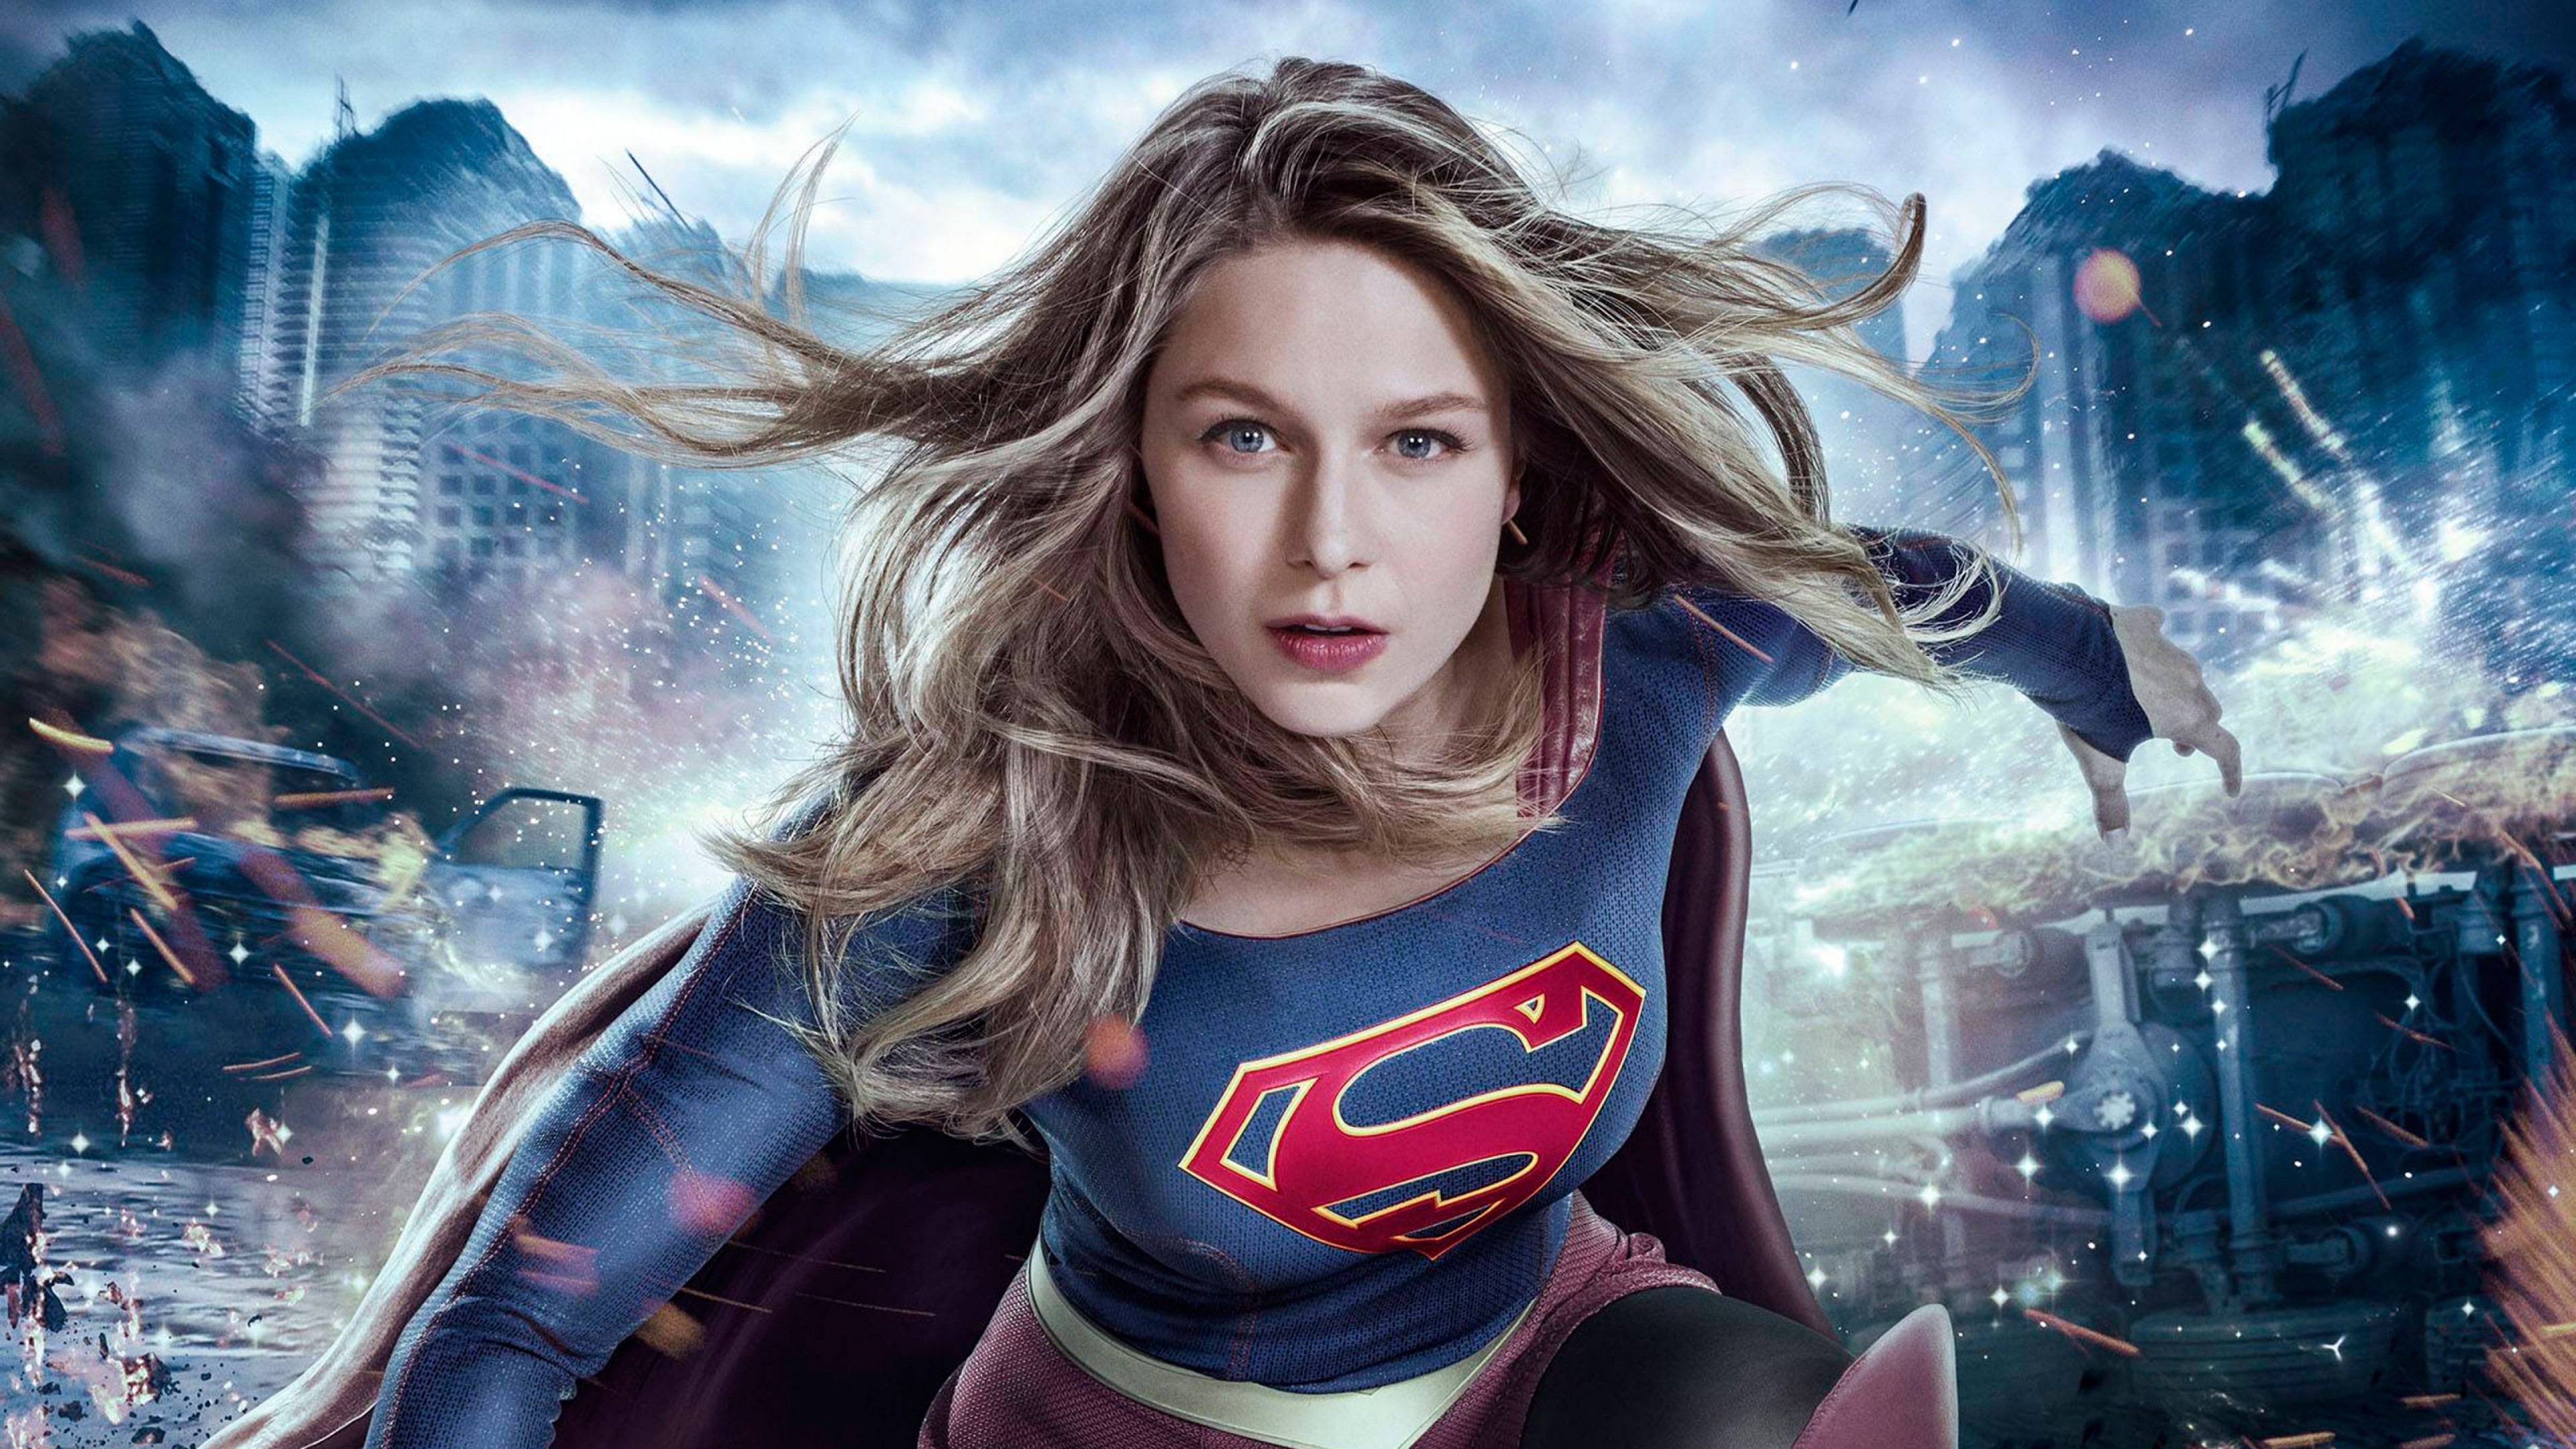 supergirl wallpaper images free download